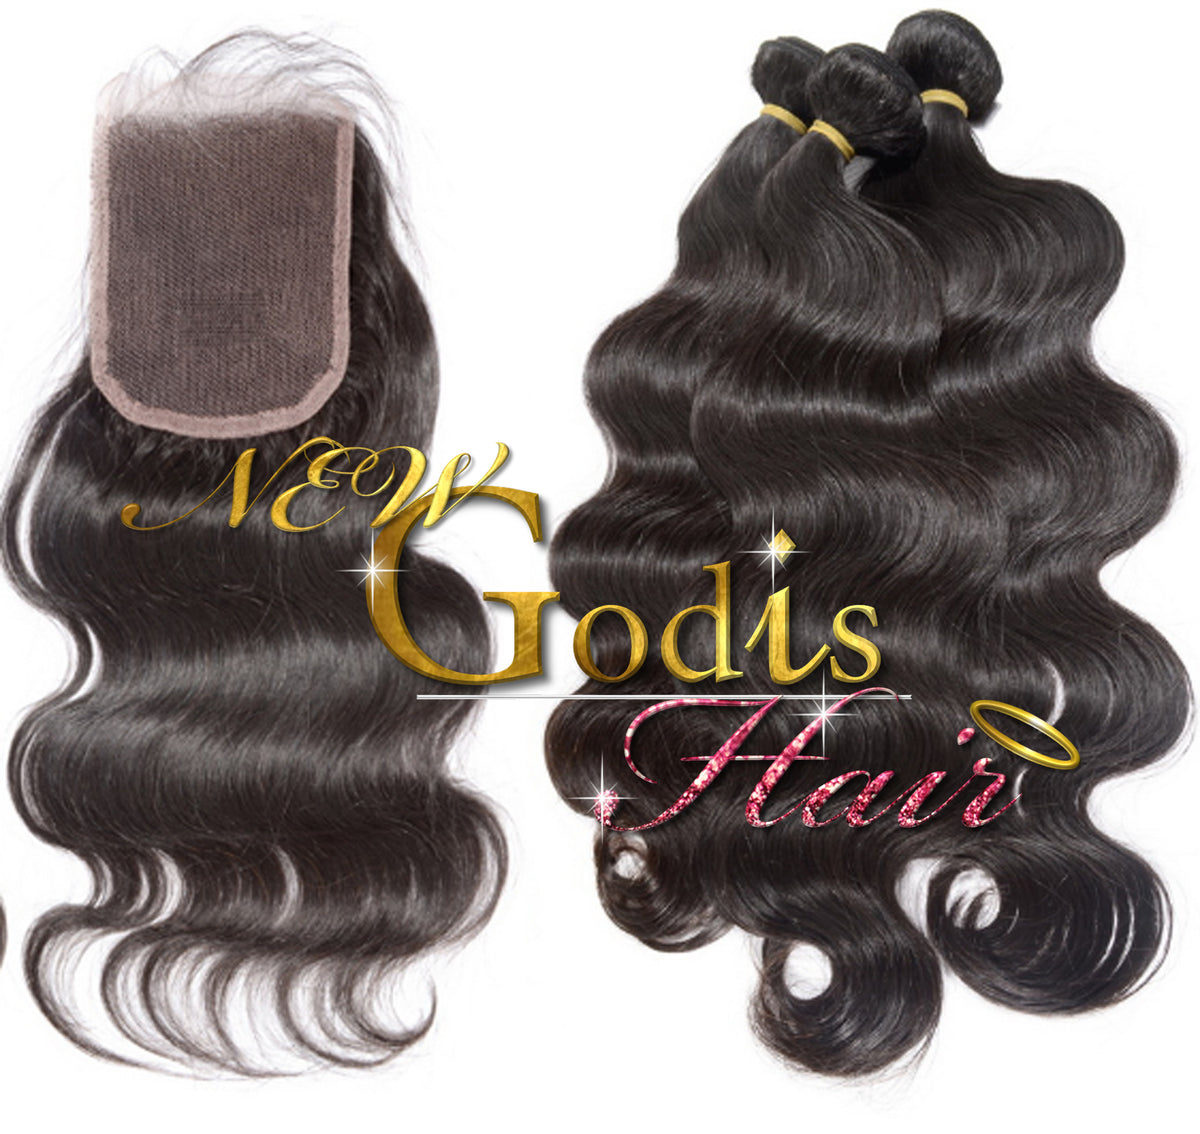 Join Us – New Godis Hair